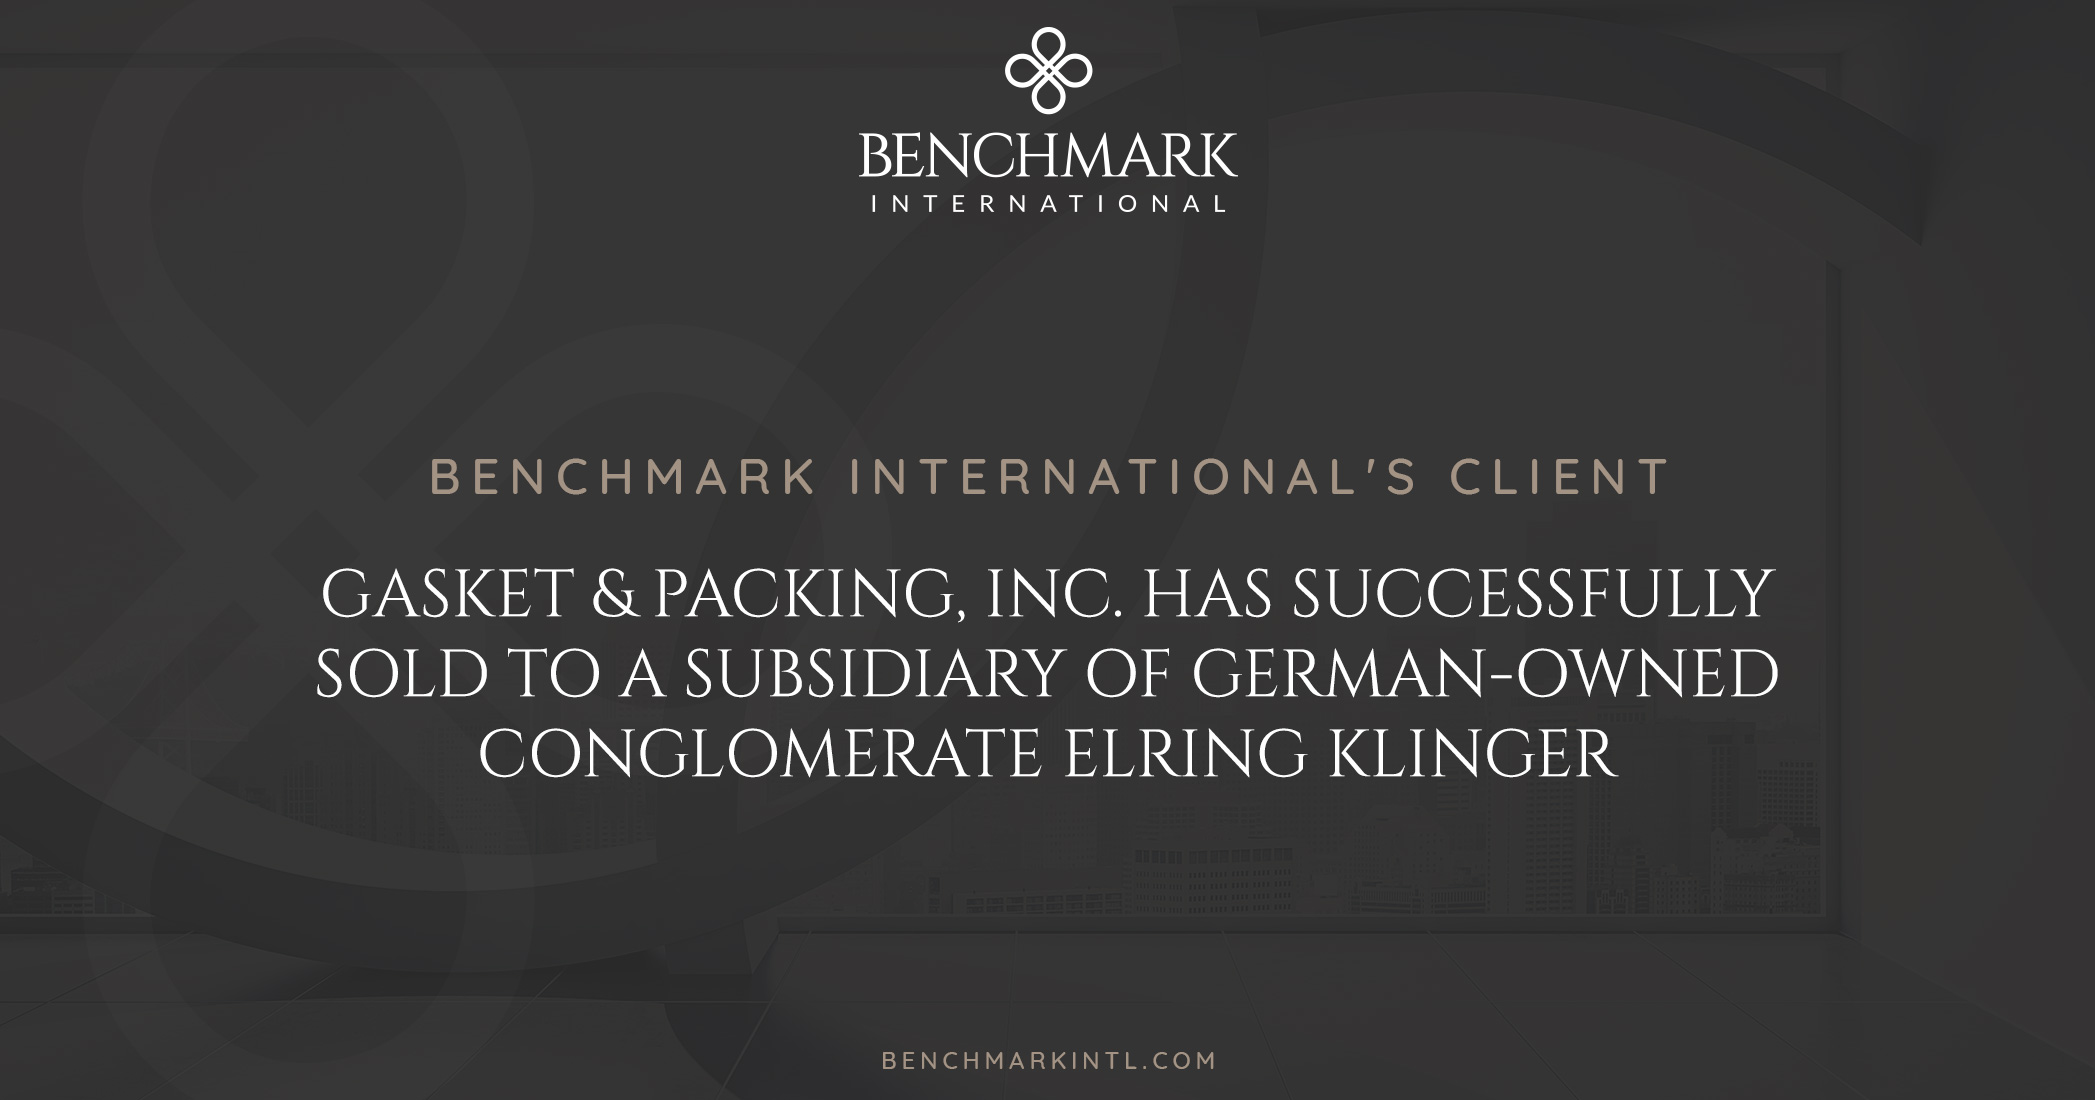 Benchmark International's Client Gasket & Packing Inc. Has Successfully Sold to a Subsidiary of German-owned Conglomerate Elring Klinger